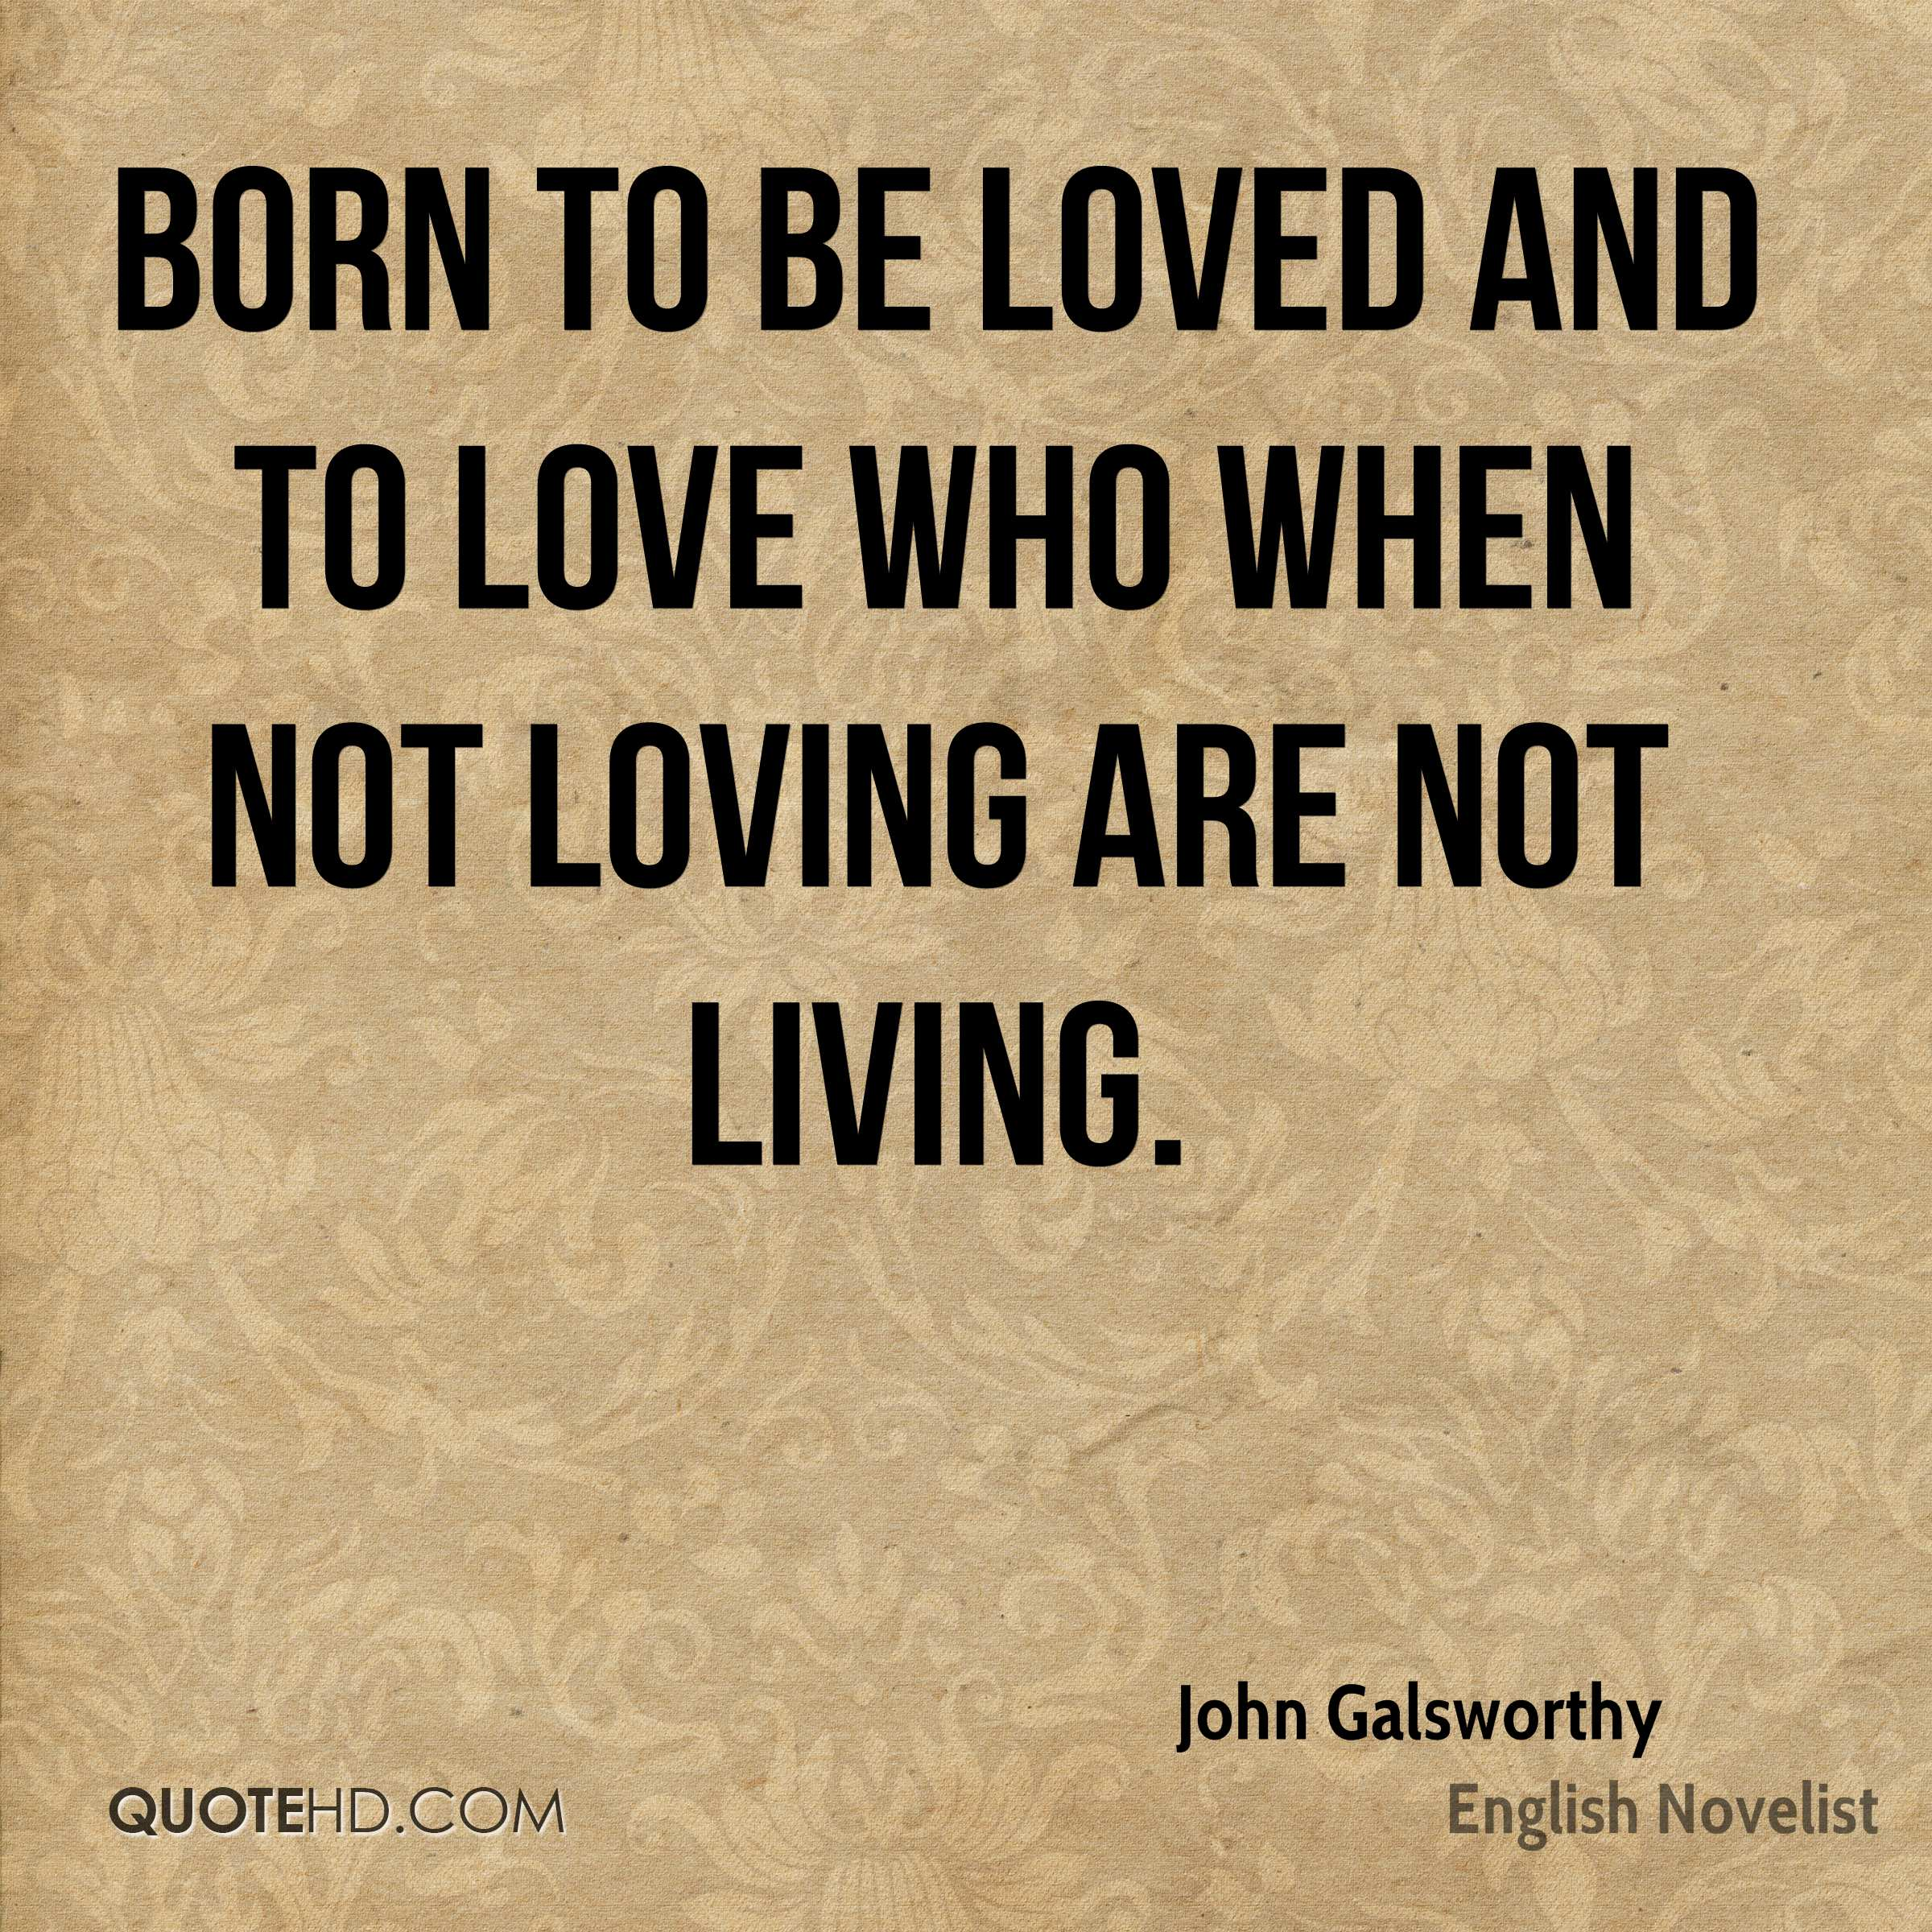 born to be loved and to love who when not loving are not living.